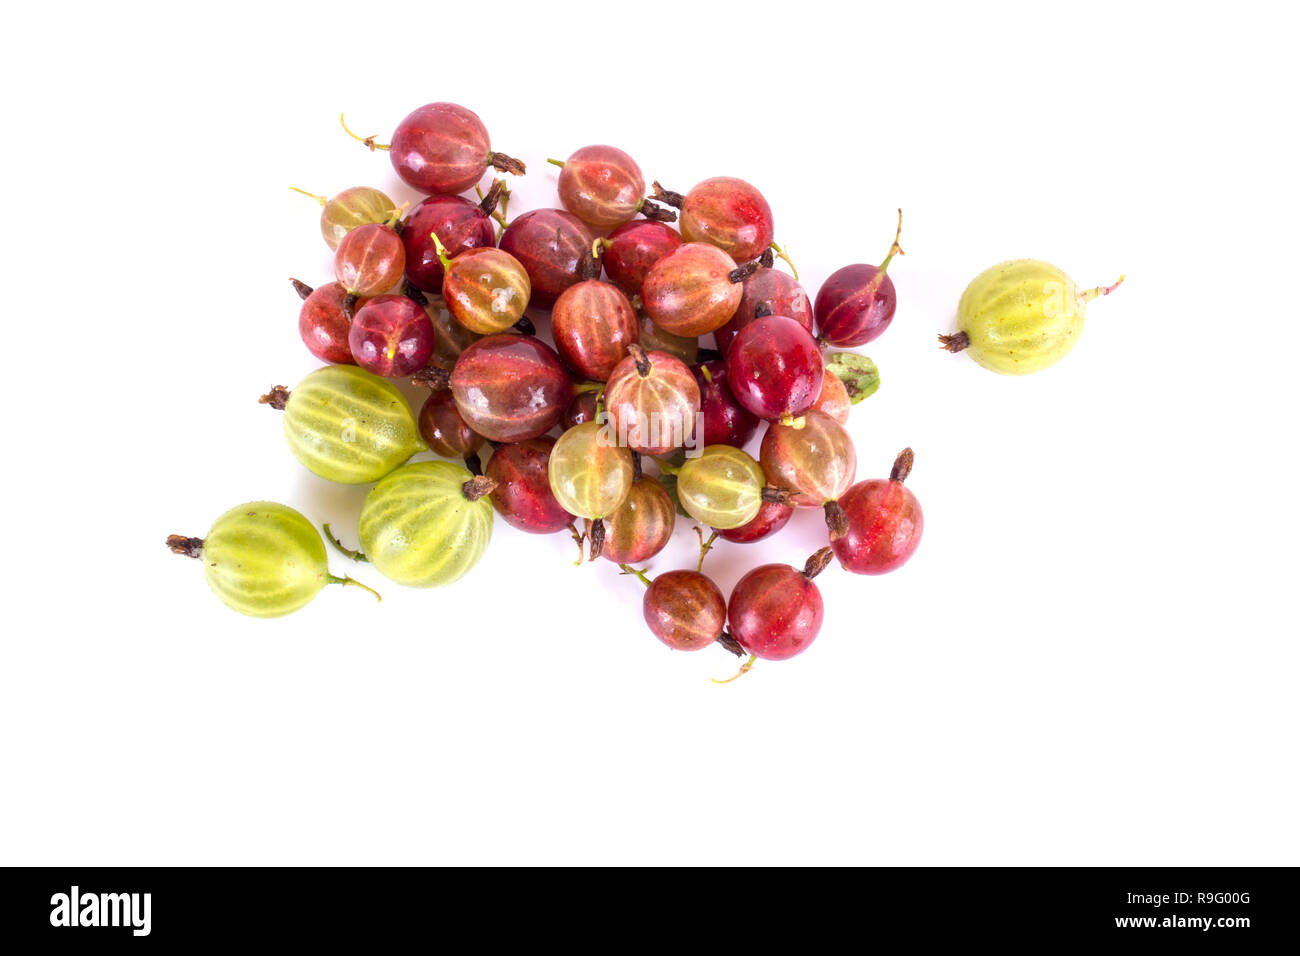 Ripe berry of gooseberry it is isolated on a white background - Stock Image